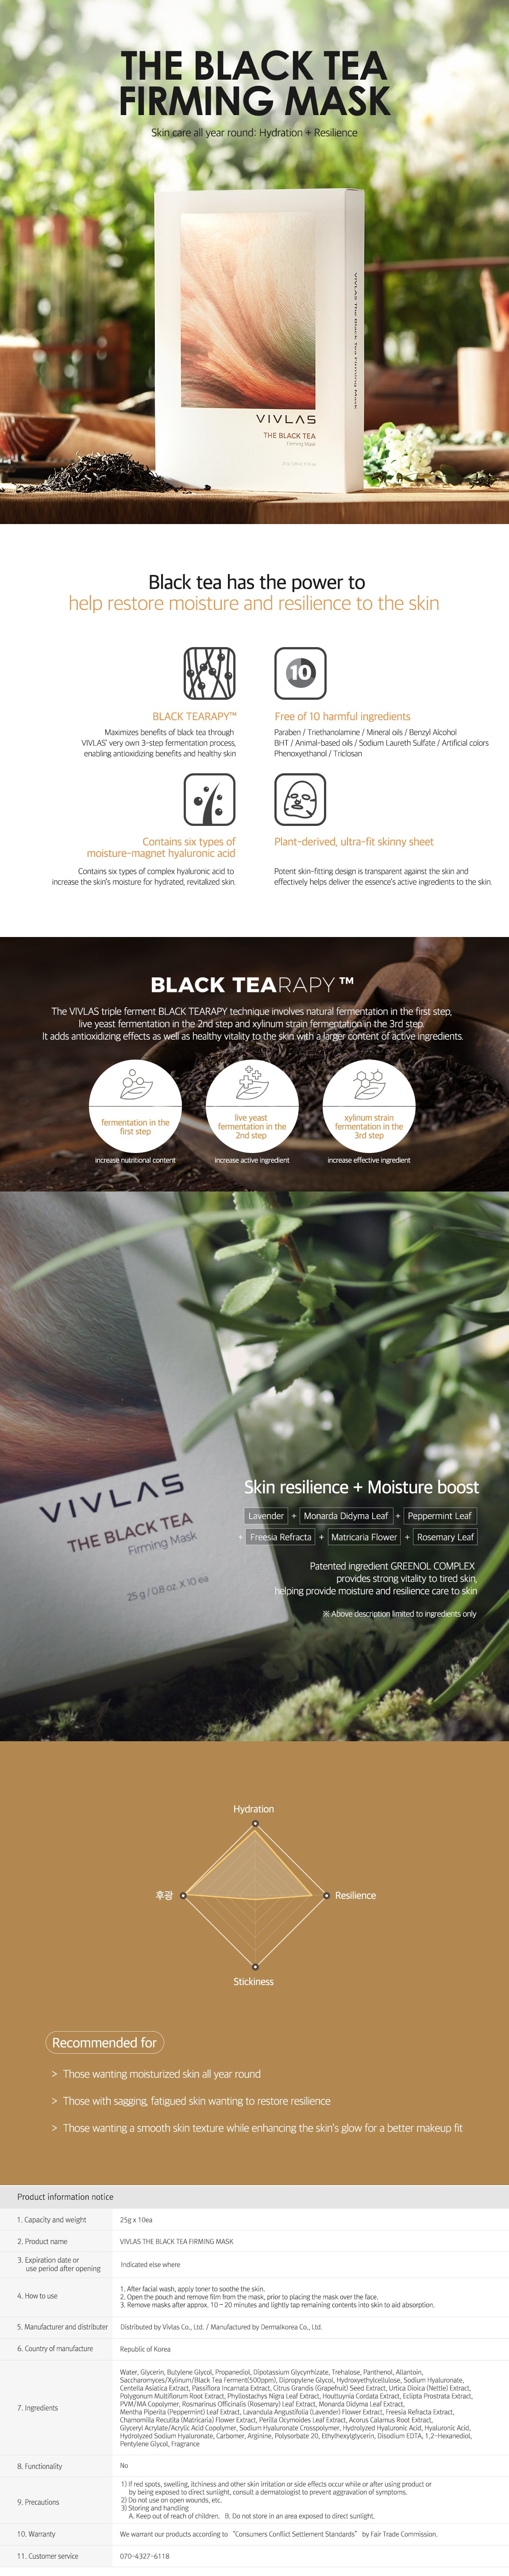 Vivlas The Black Tea Firming Mask